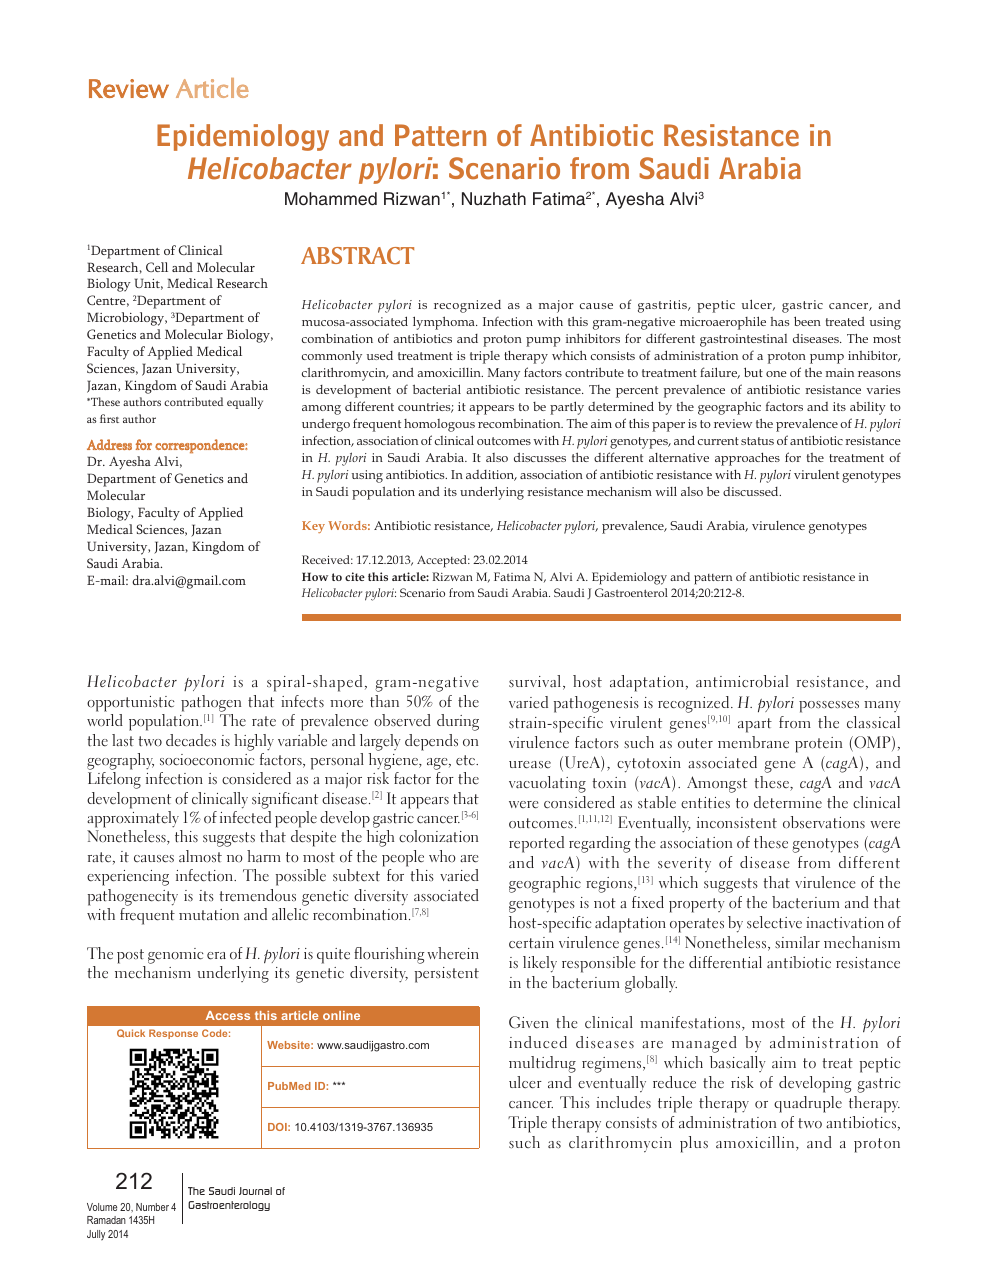 Epidemiology and pattern of antibiotic resistance in Helicobacter pylori:  Scenario from Saudi Arabia – topic of research paper in Clinical medicine.  Download scholarly article PDF and read for free on CyberLeninka open